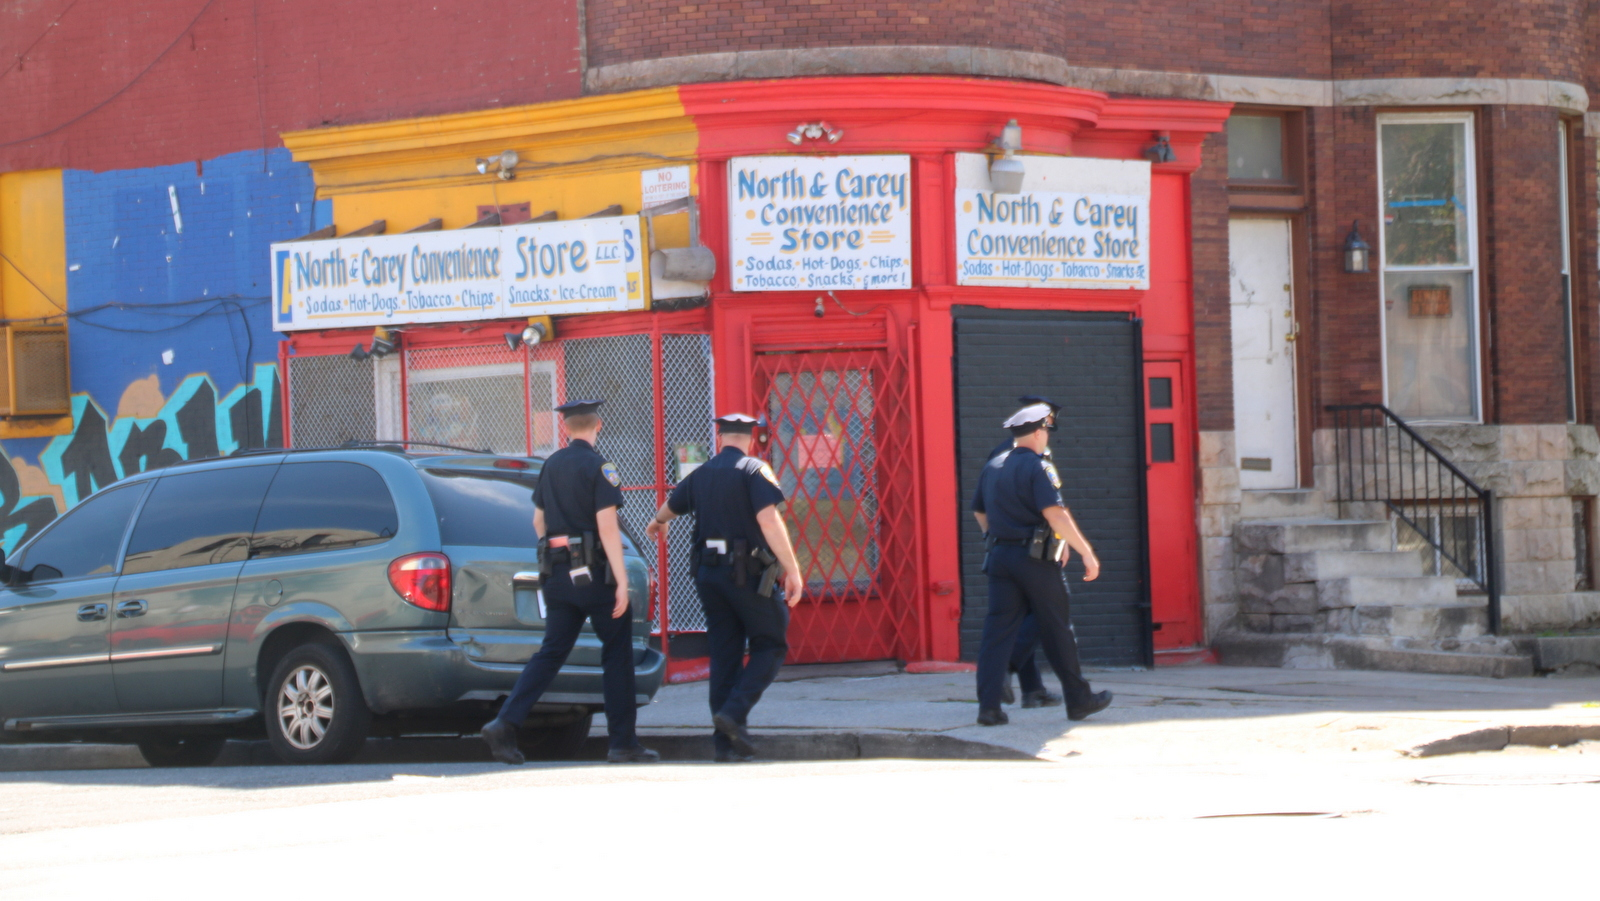 On North Avenue yesterday, Baltimore Police were highly visible walking the streets and entering stores. (Fern Shen)